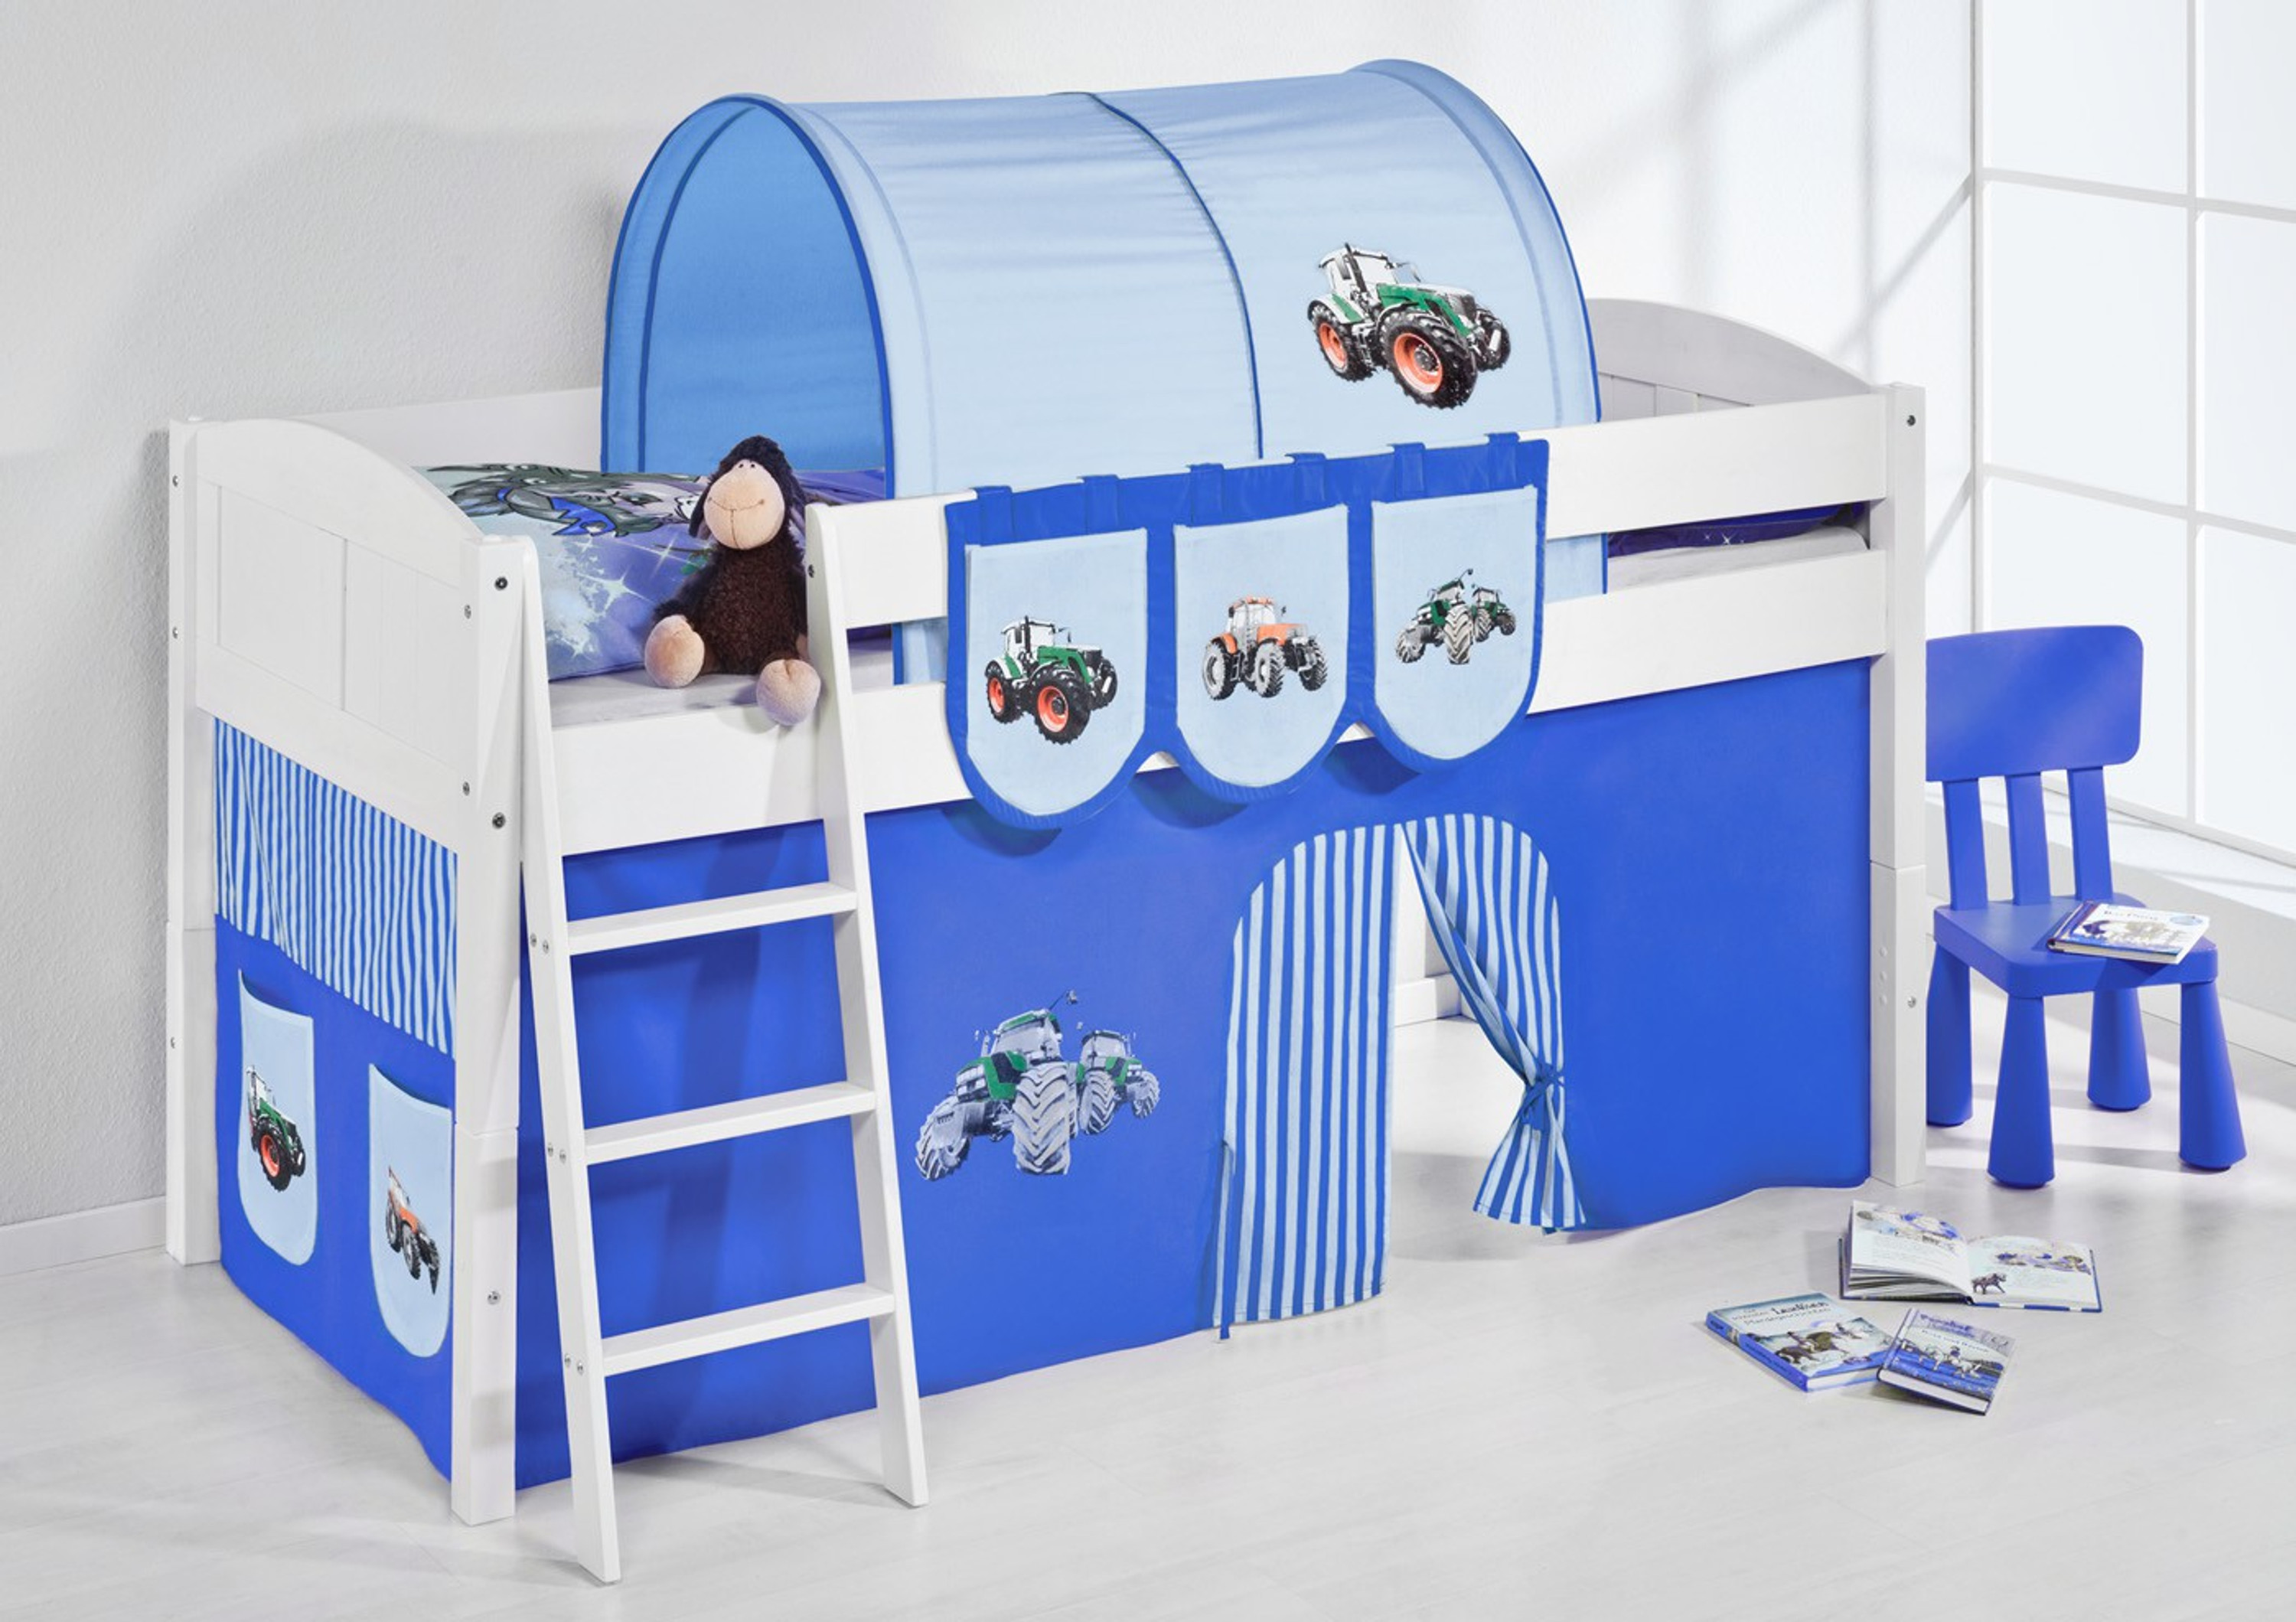 spielbett trecker blau wei mit vorhang 4106 m bel baby kinderzimmer hochbetten. Black Bedroom Furniture Sets. Home Design Ideas